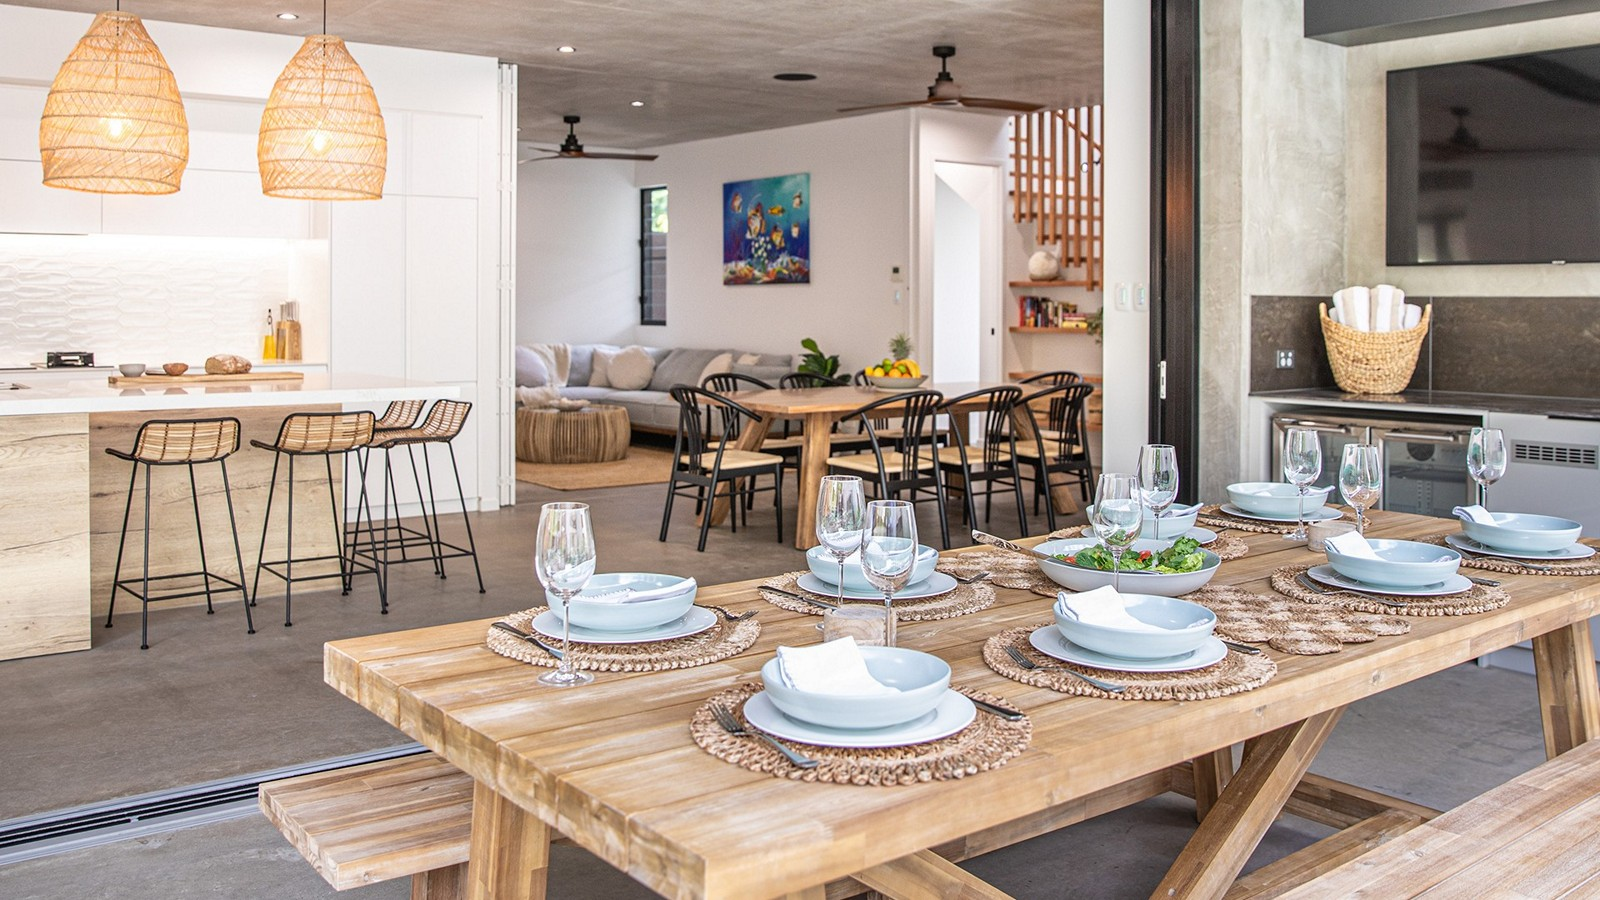 Contemporary house showing set dining table